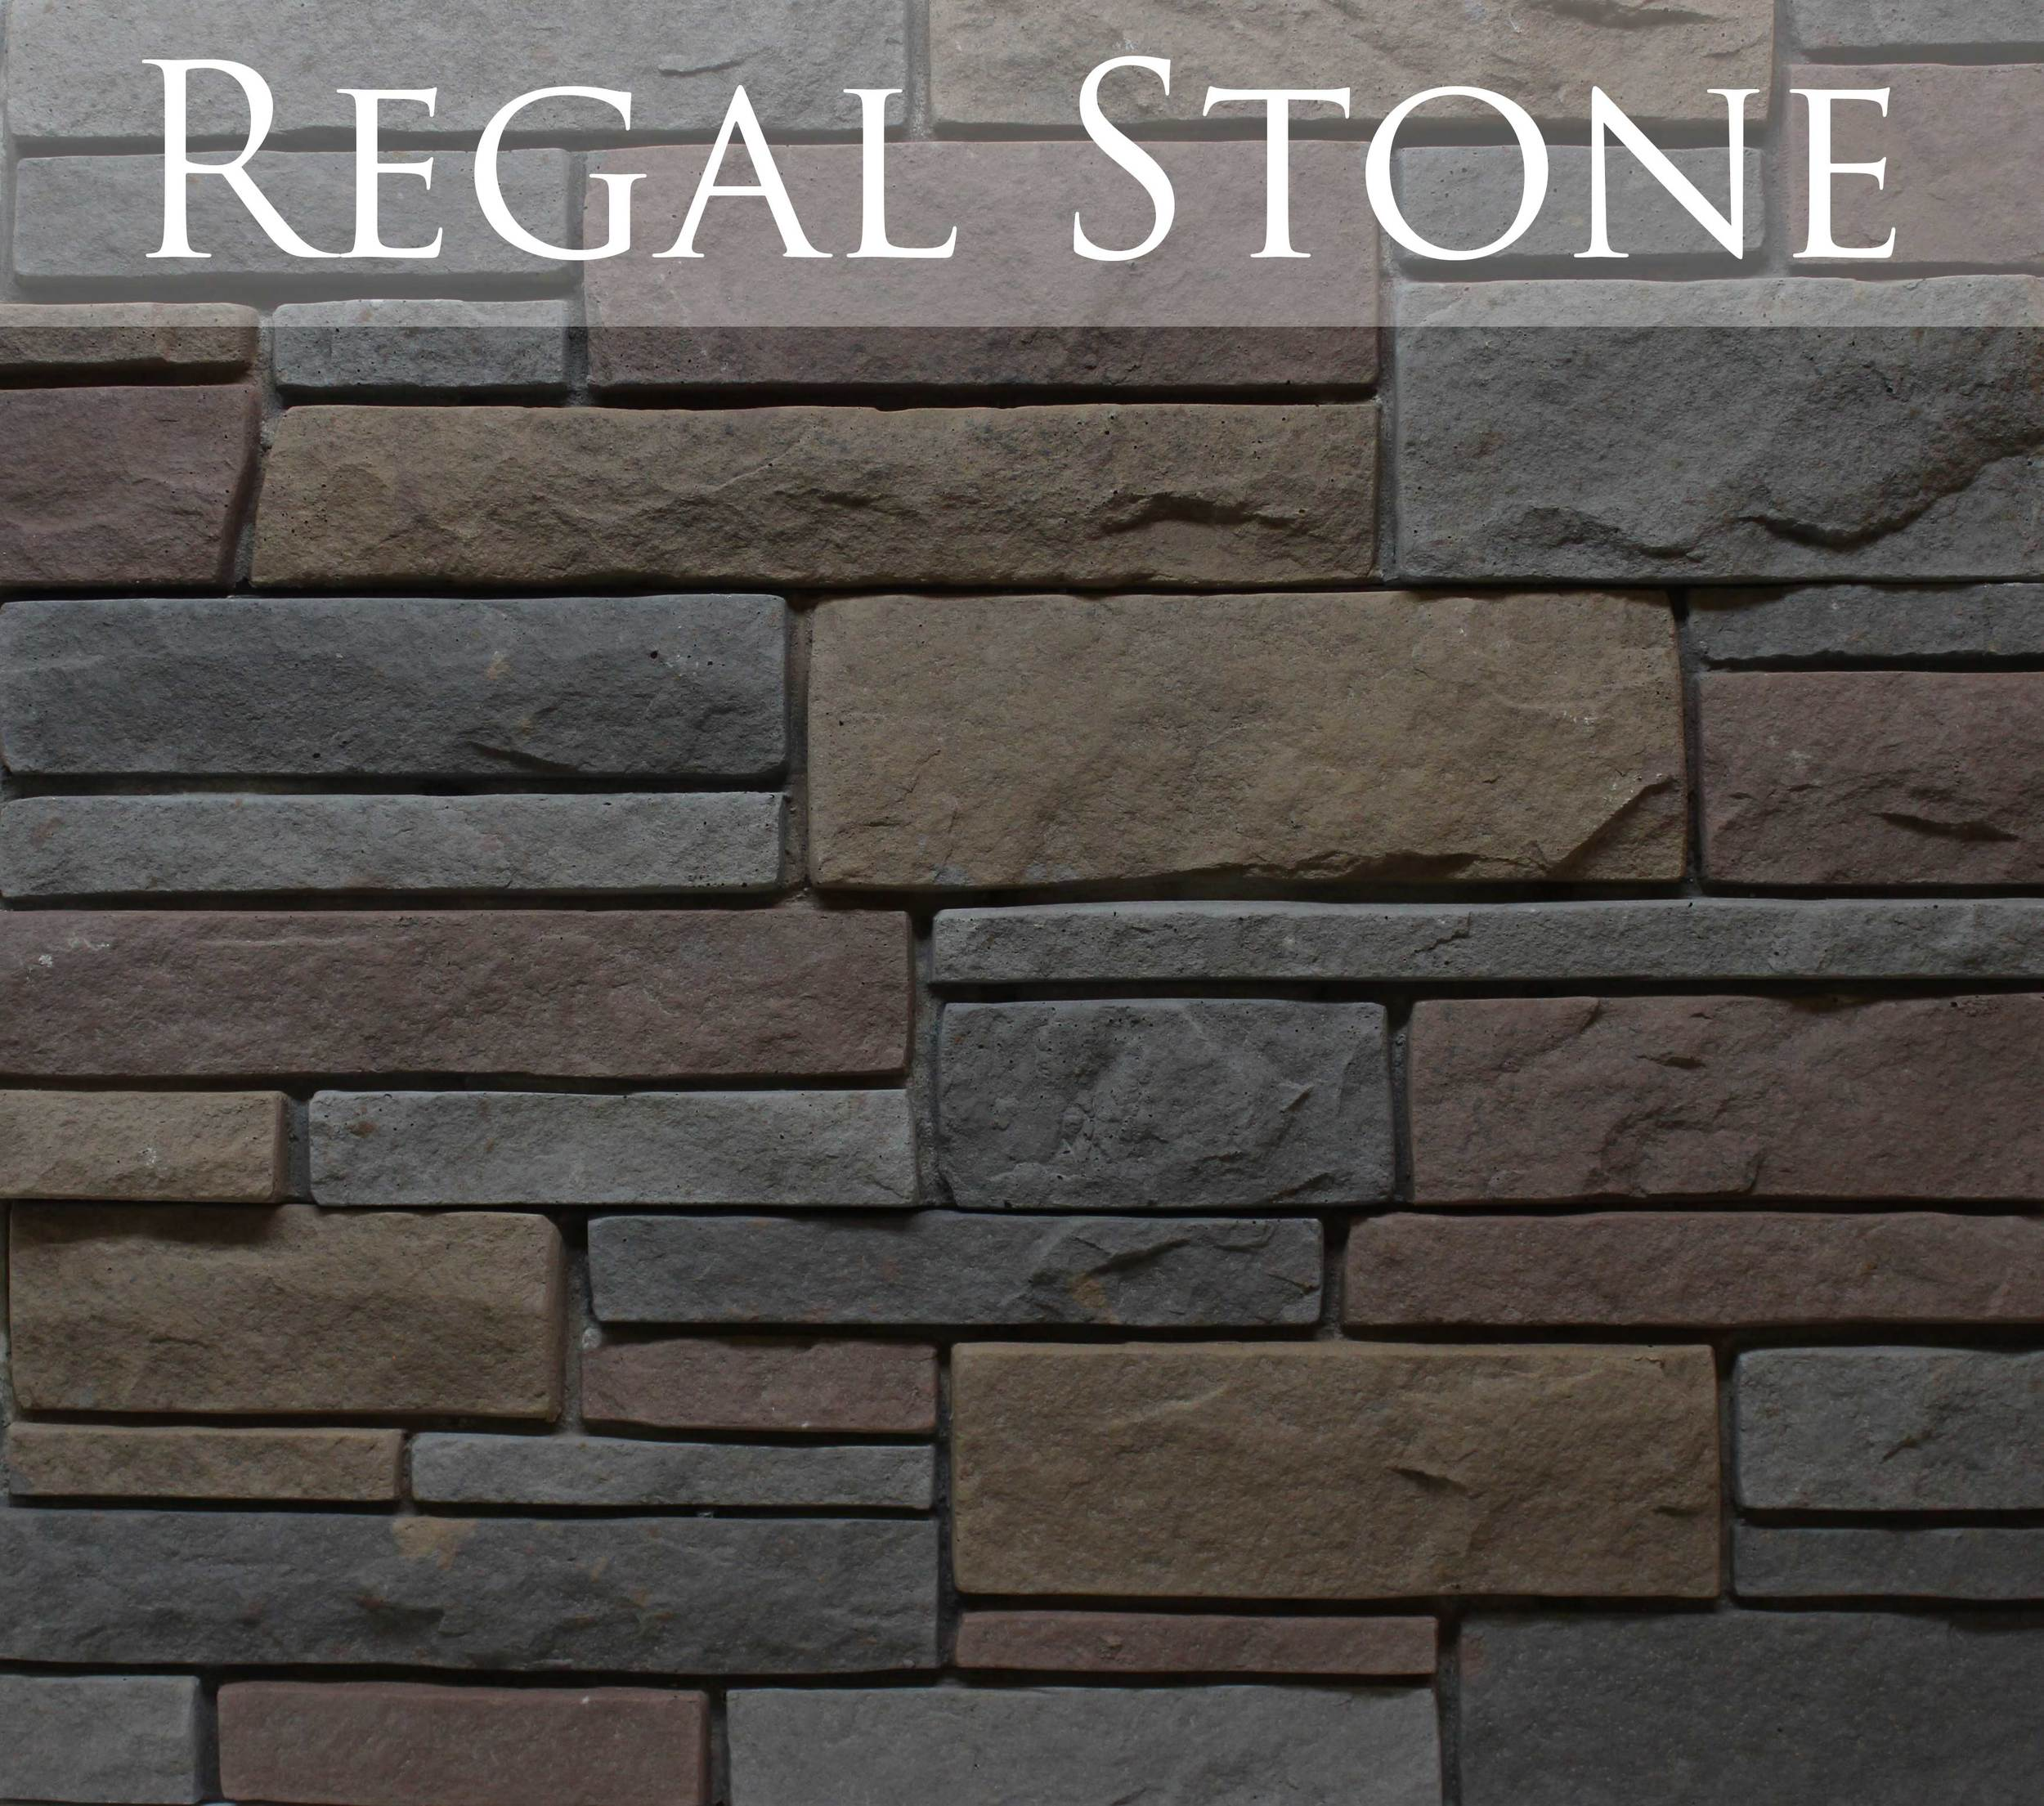 New for 2015! Regal stone marries fiery earth tones with dramatic contrast to give your project the POP it'slooking for